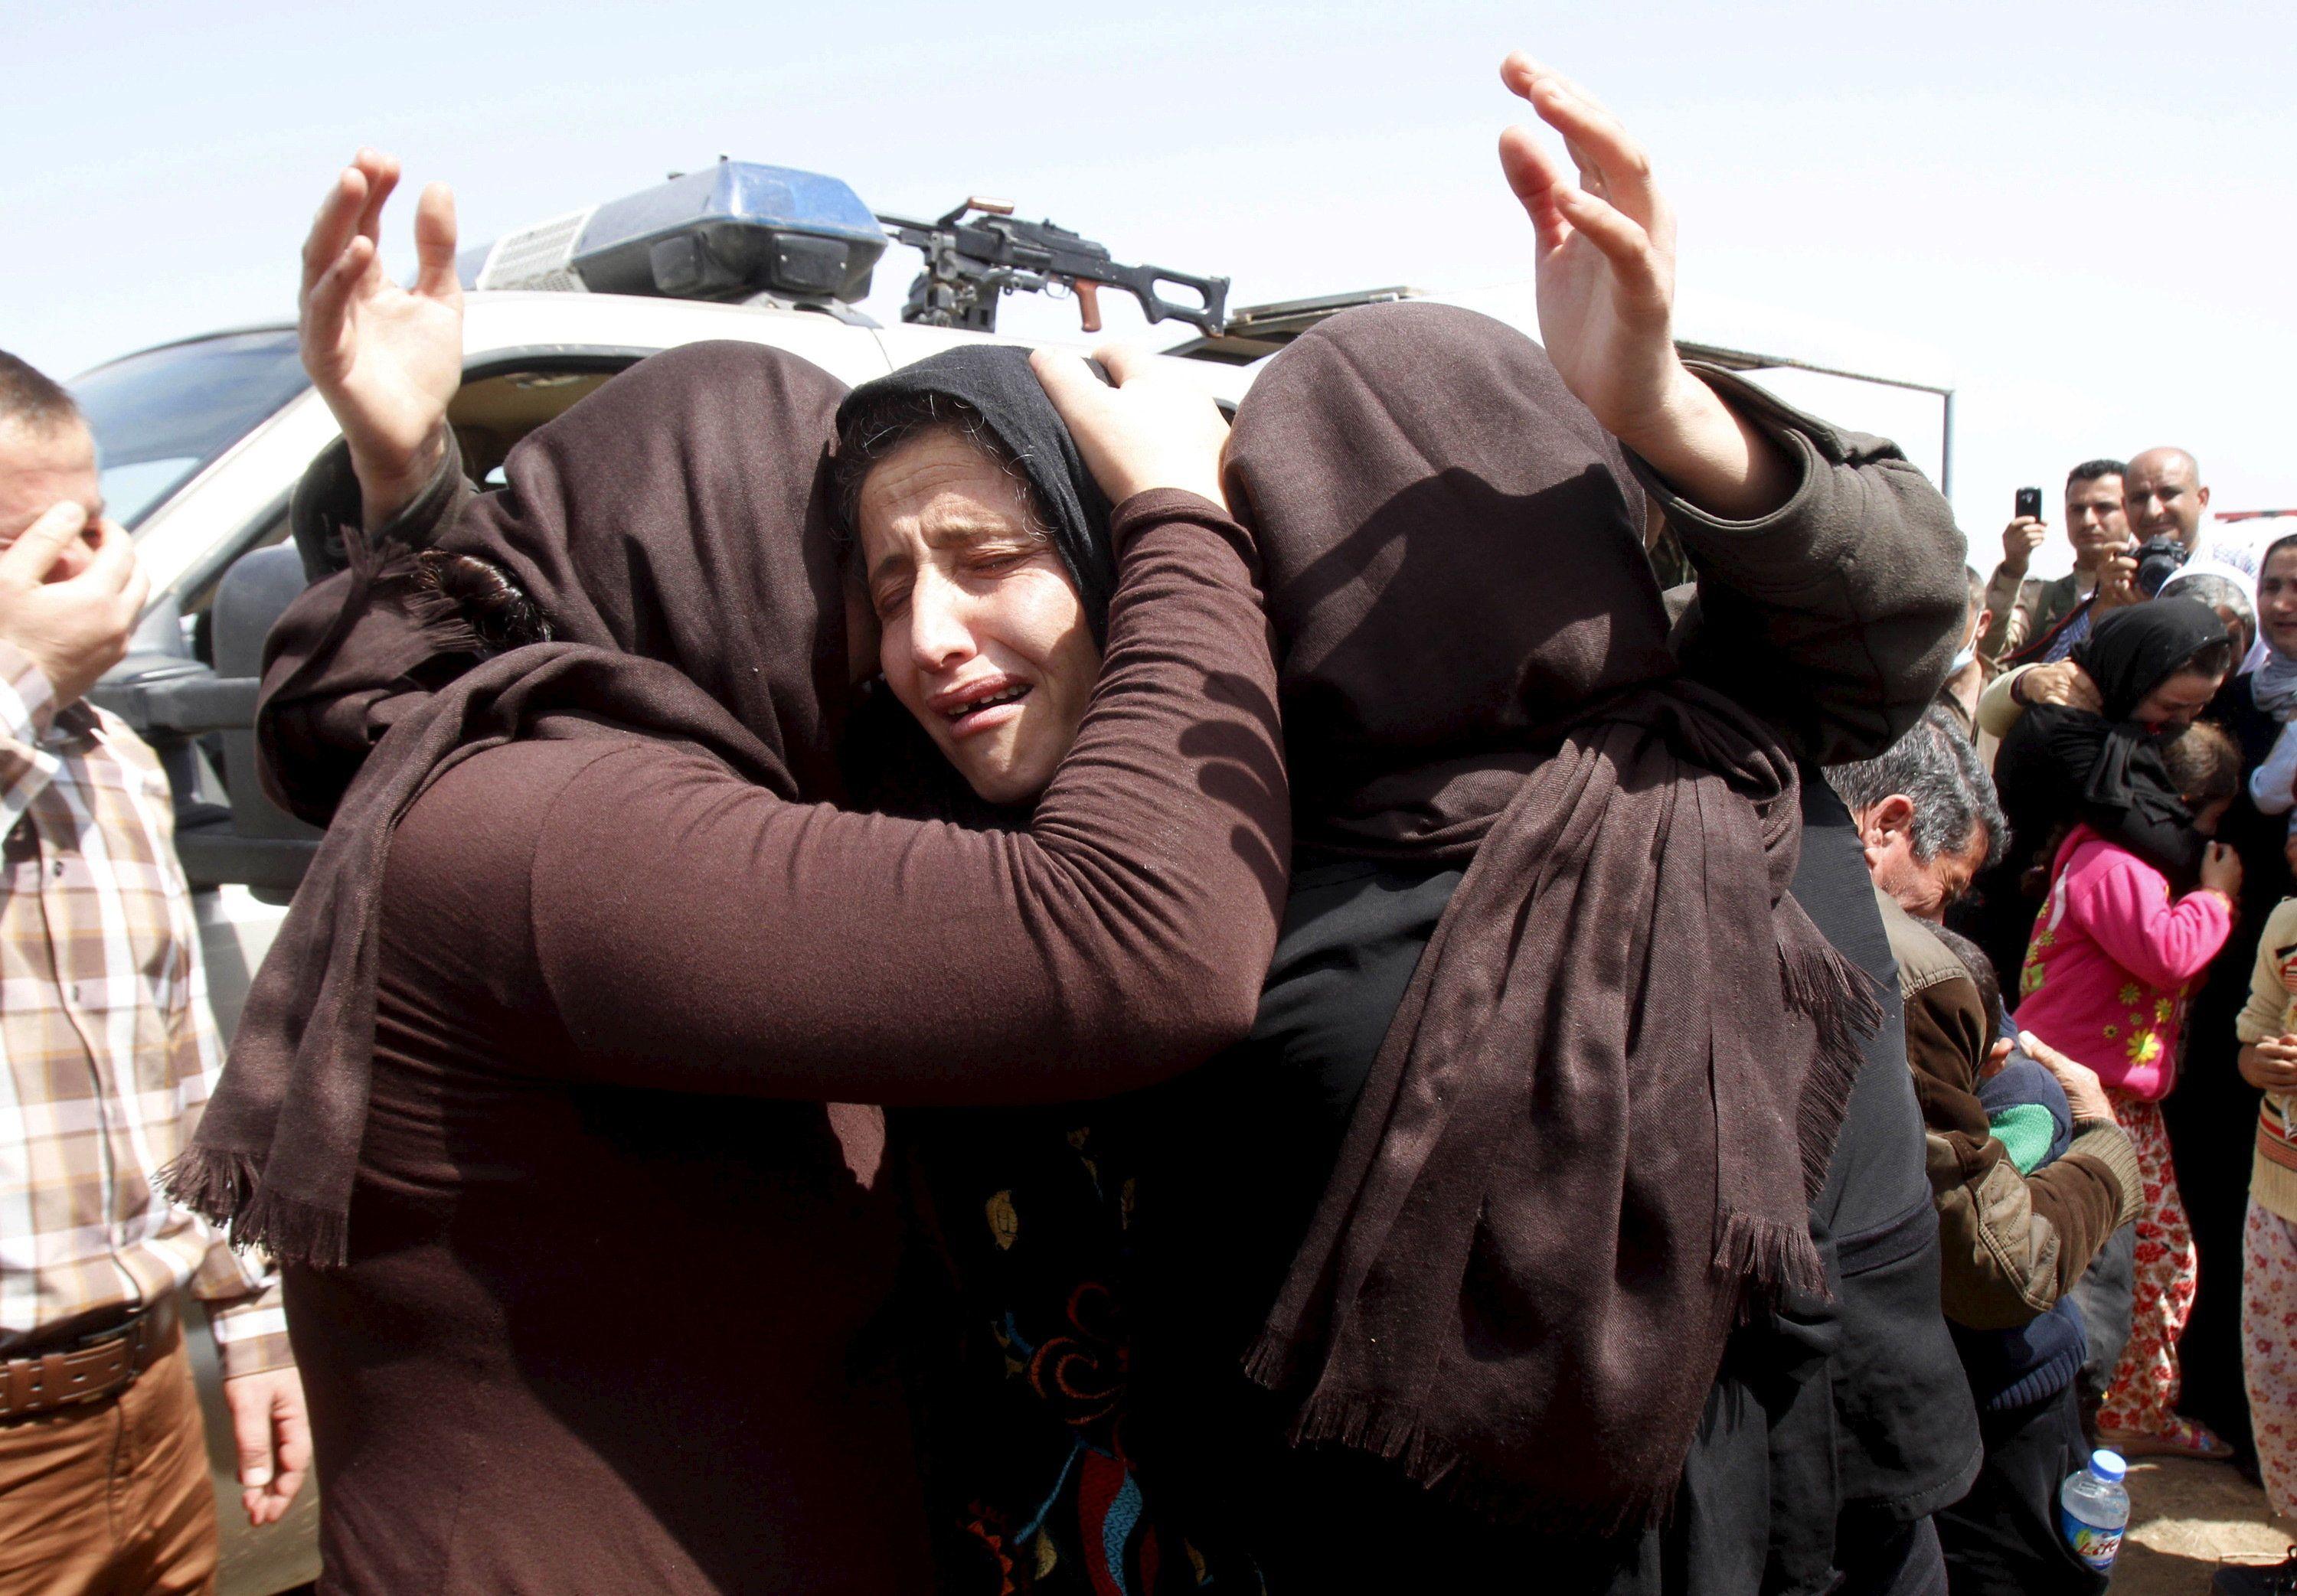 Members of the minority Yazidi sect who were newly released hug each other on the outskirts of Kirkuk April 8, 2015. More than 200 elderly and infirm Yazidis were freed on Wednesday by Islamic State militants who had been holding them captive since overruning their villages in northwestern Iraq last summer. REUTERS/Ako Rasheed  TPX IMAGES OF THE DAY